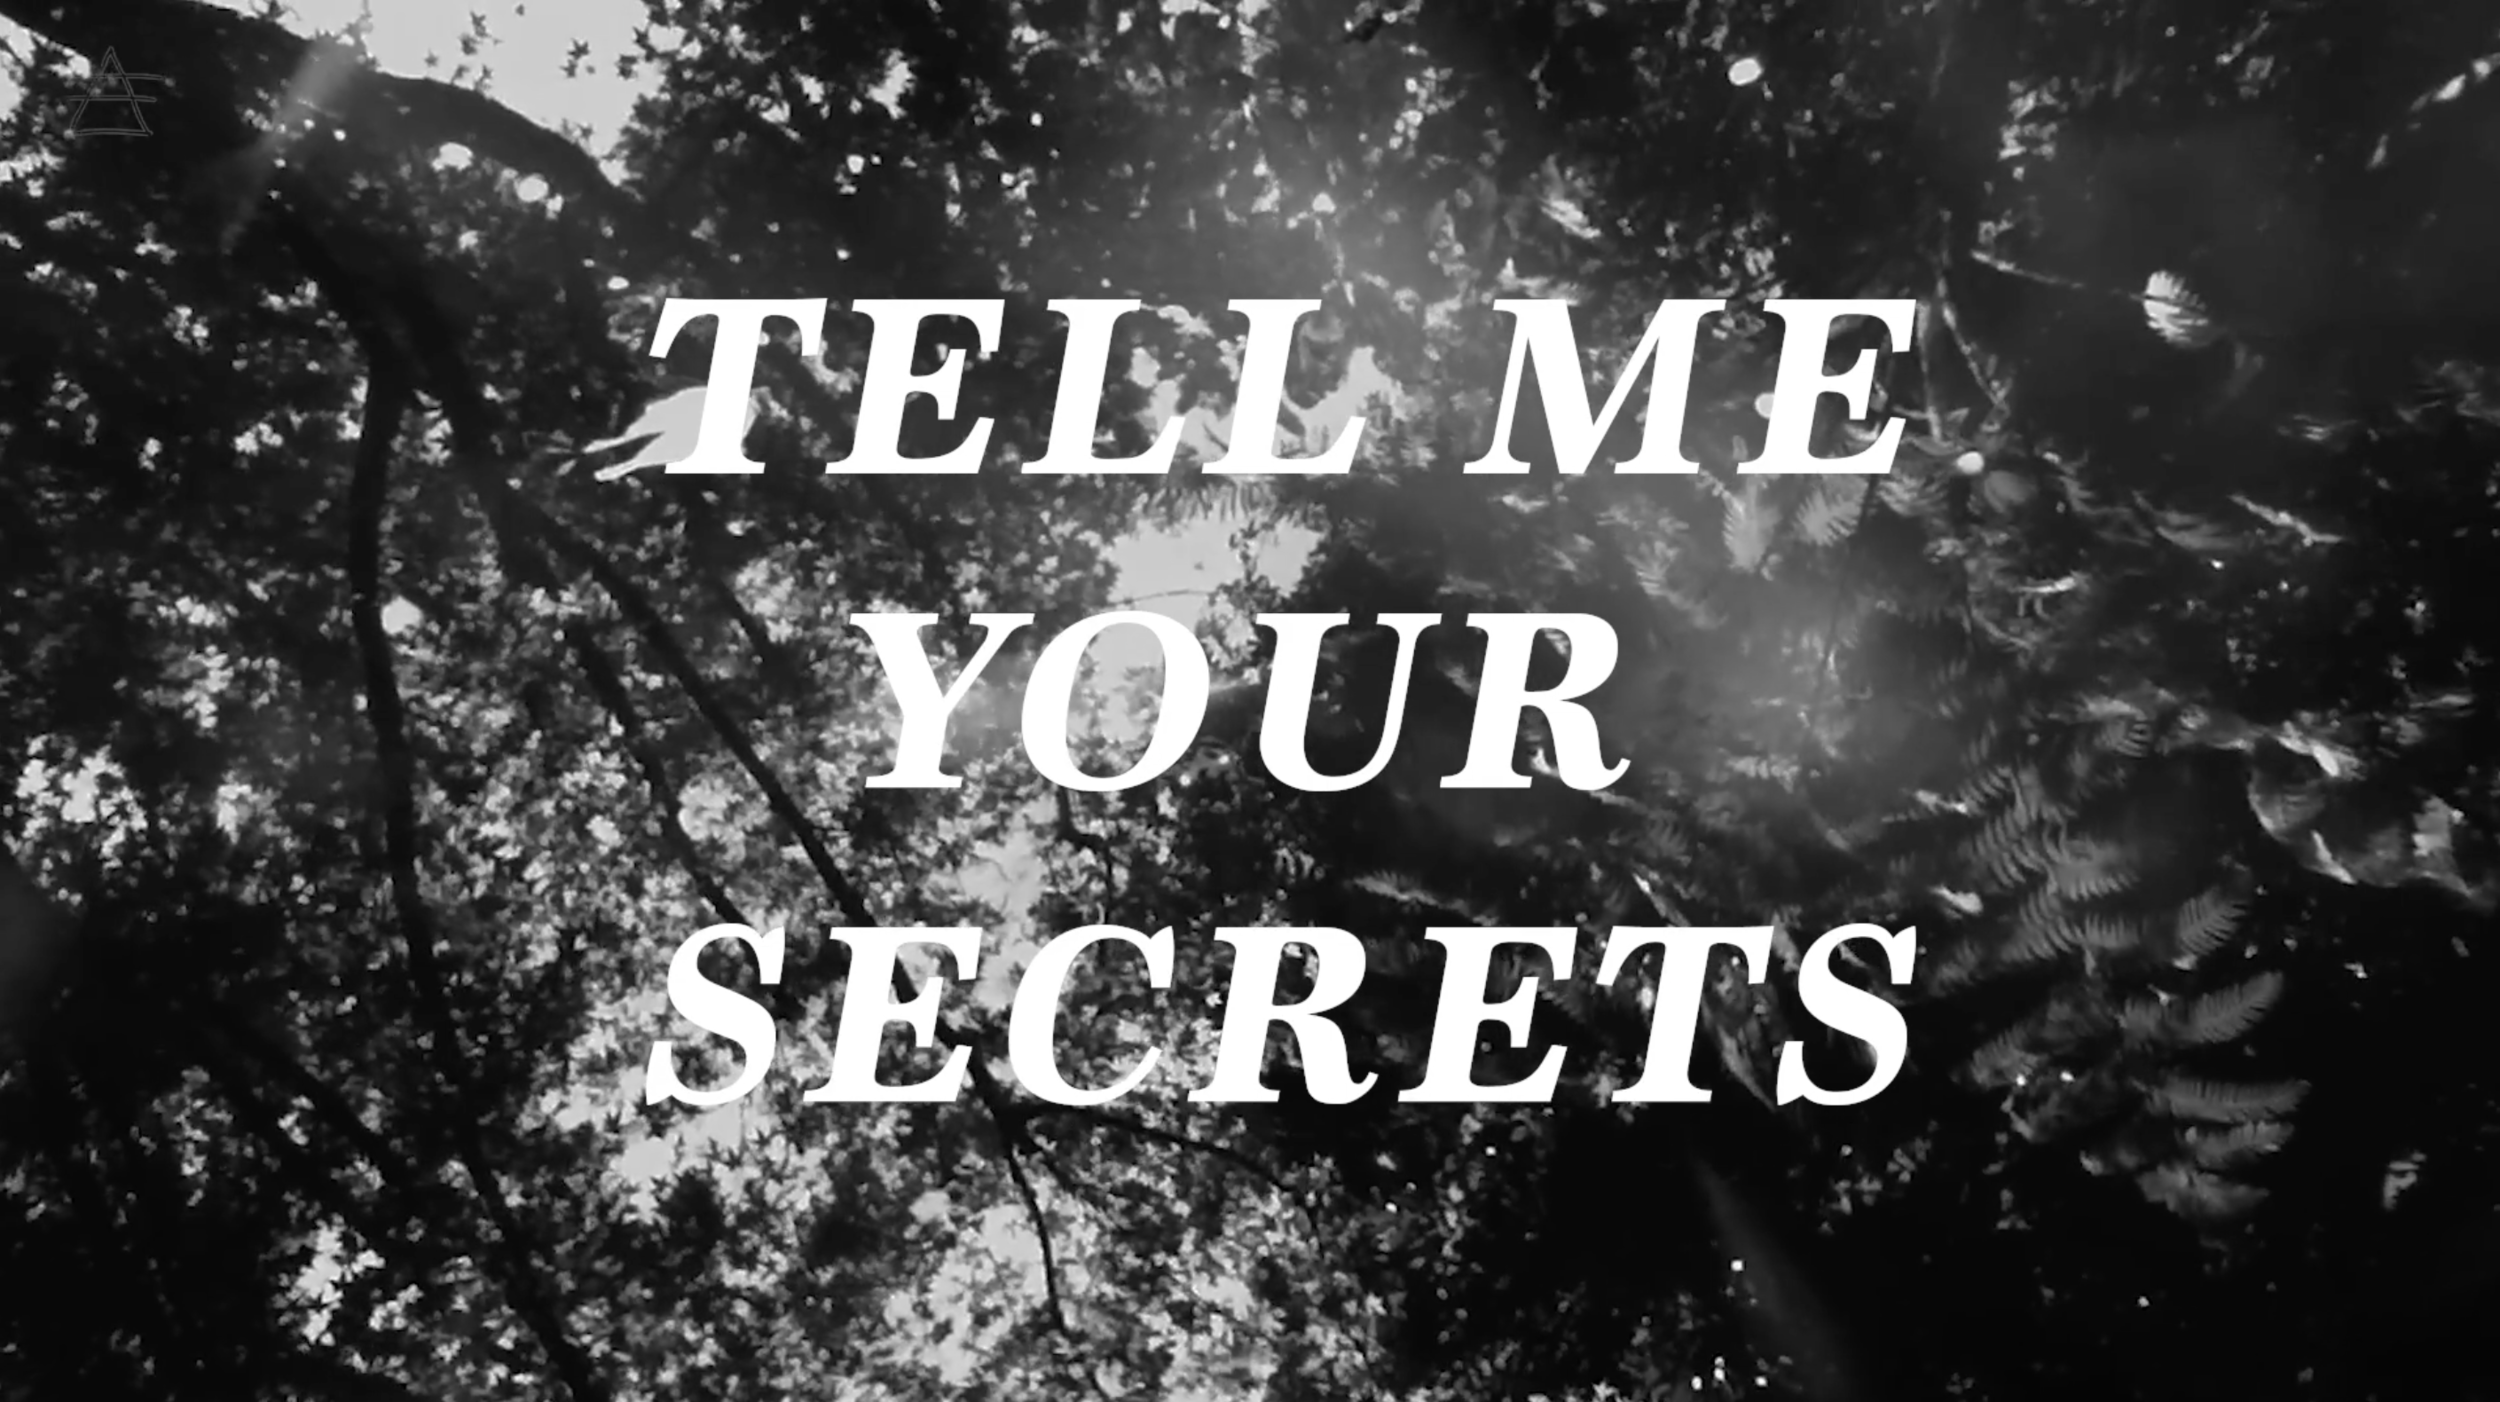 fire mist - tell me your secrets music gypsypop lyric video still3.png